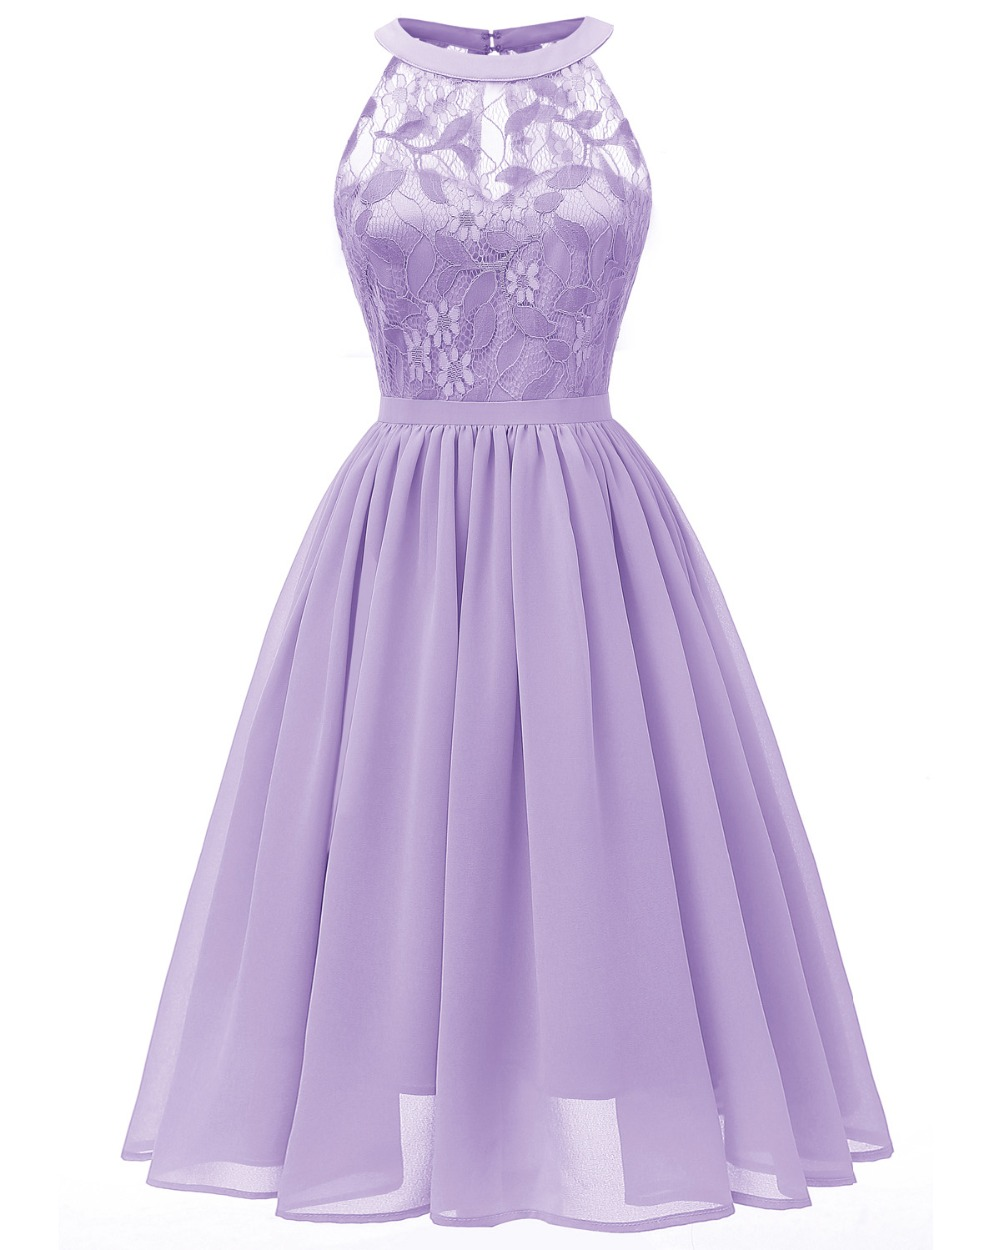 Formal Party Dress 3